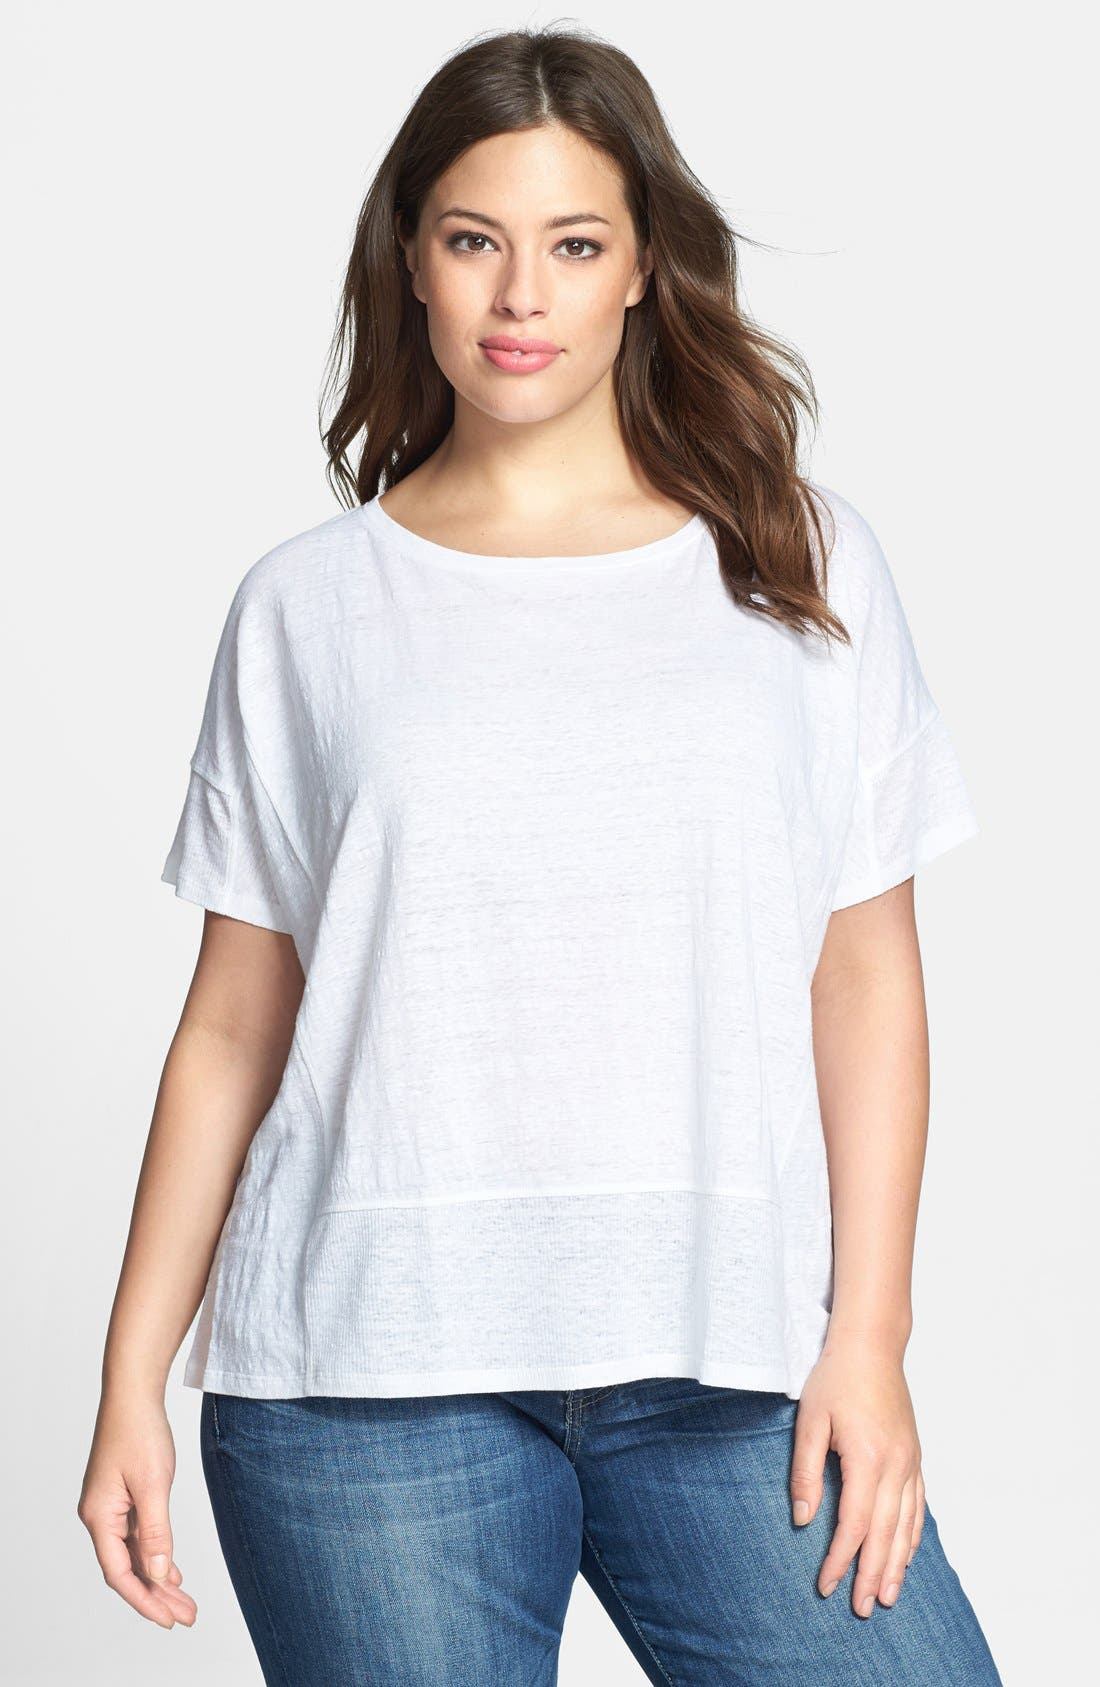 Alternate Image 1 Selected - Eileen Fisher Organic Linen Jersey Bateau Top (Plus Size)